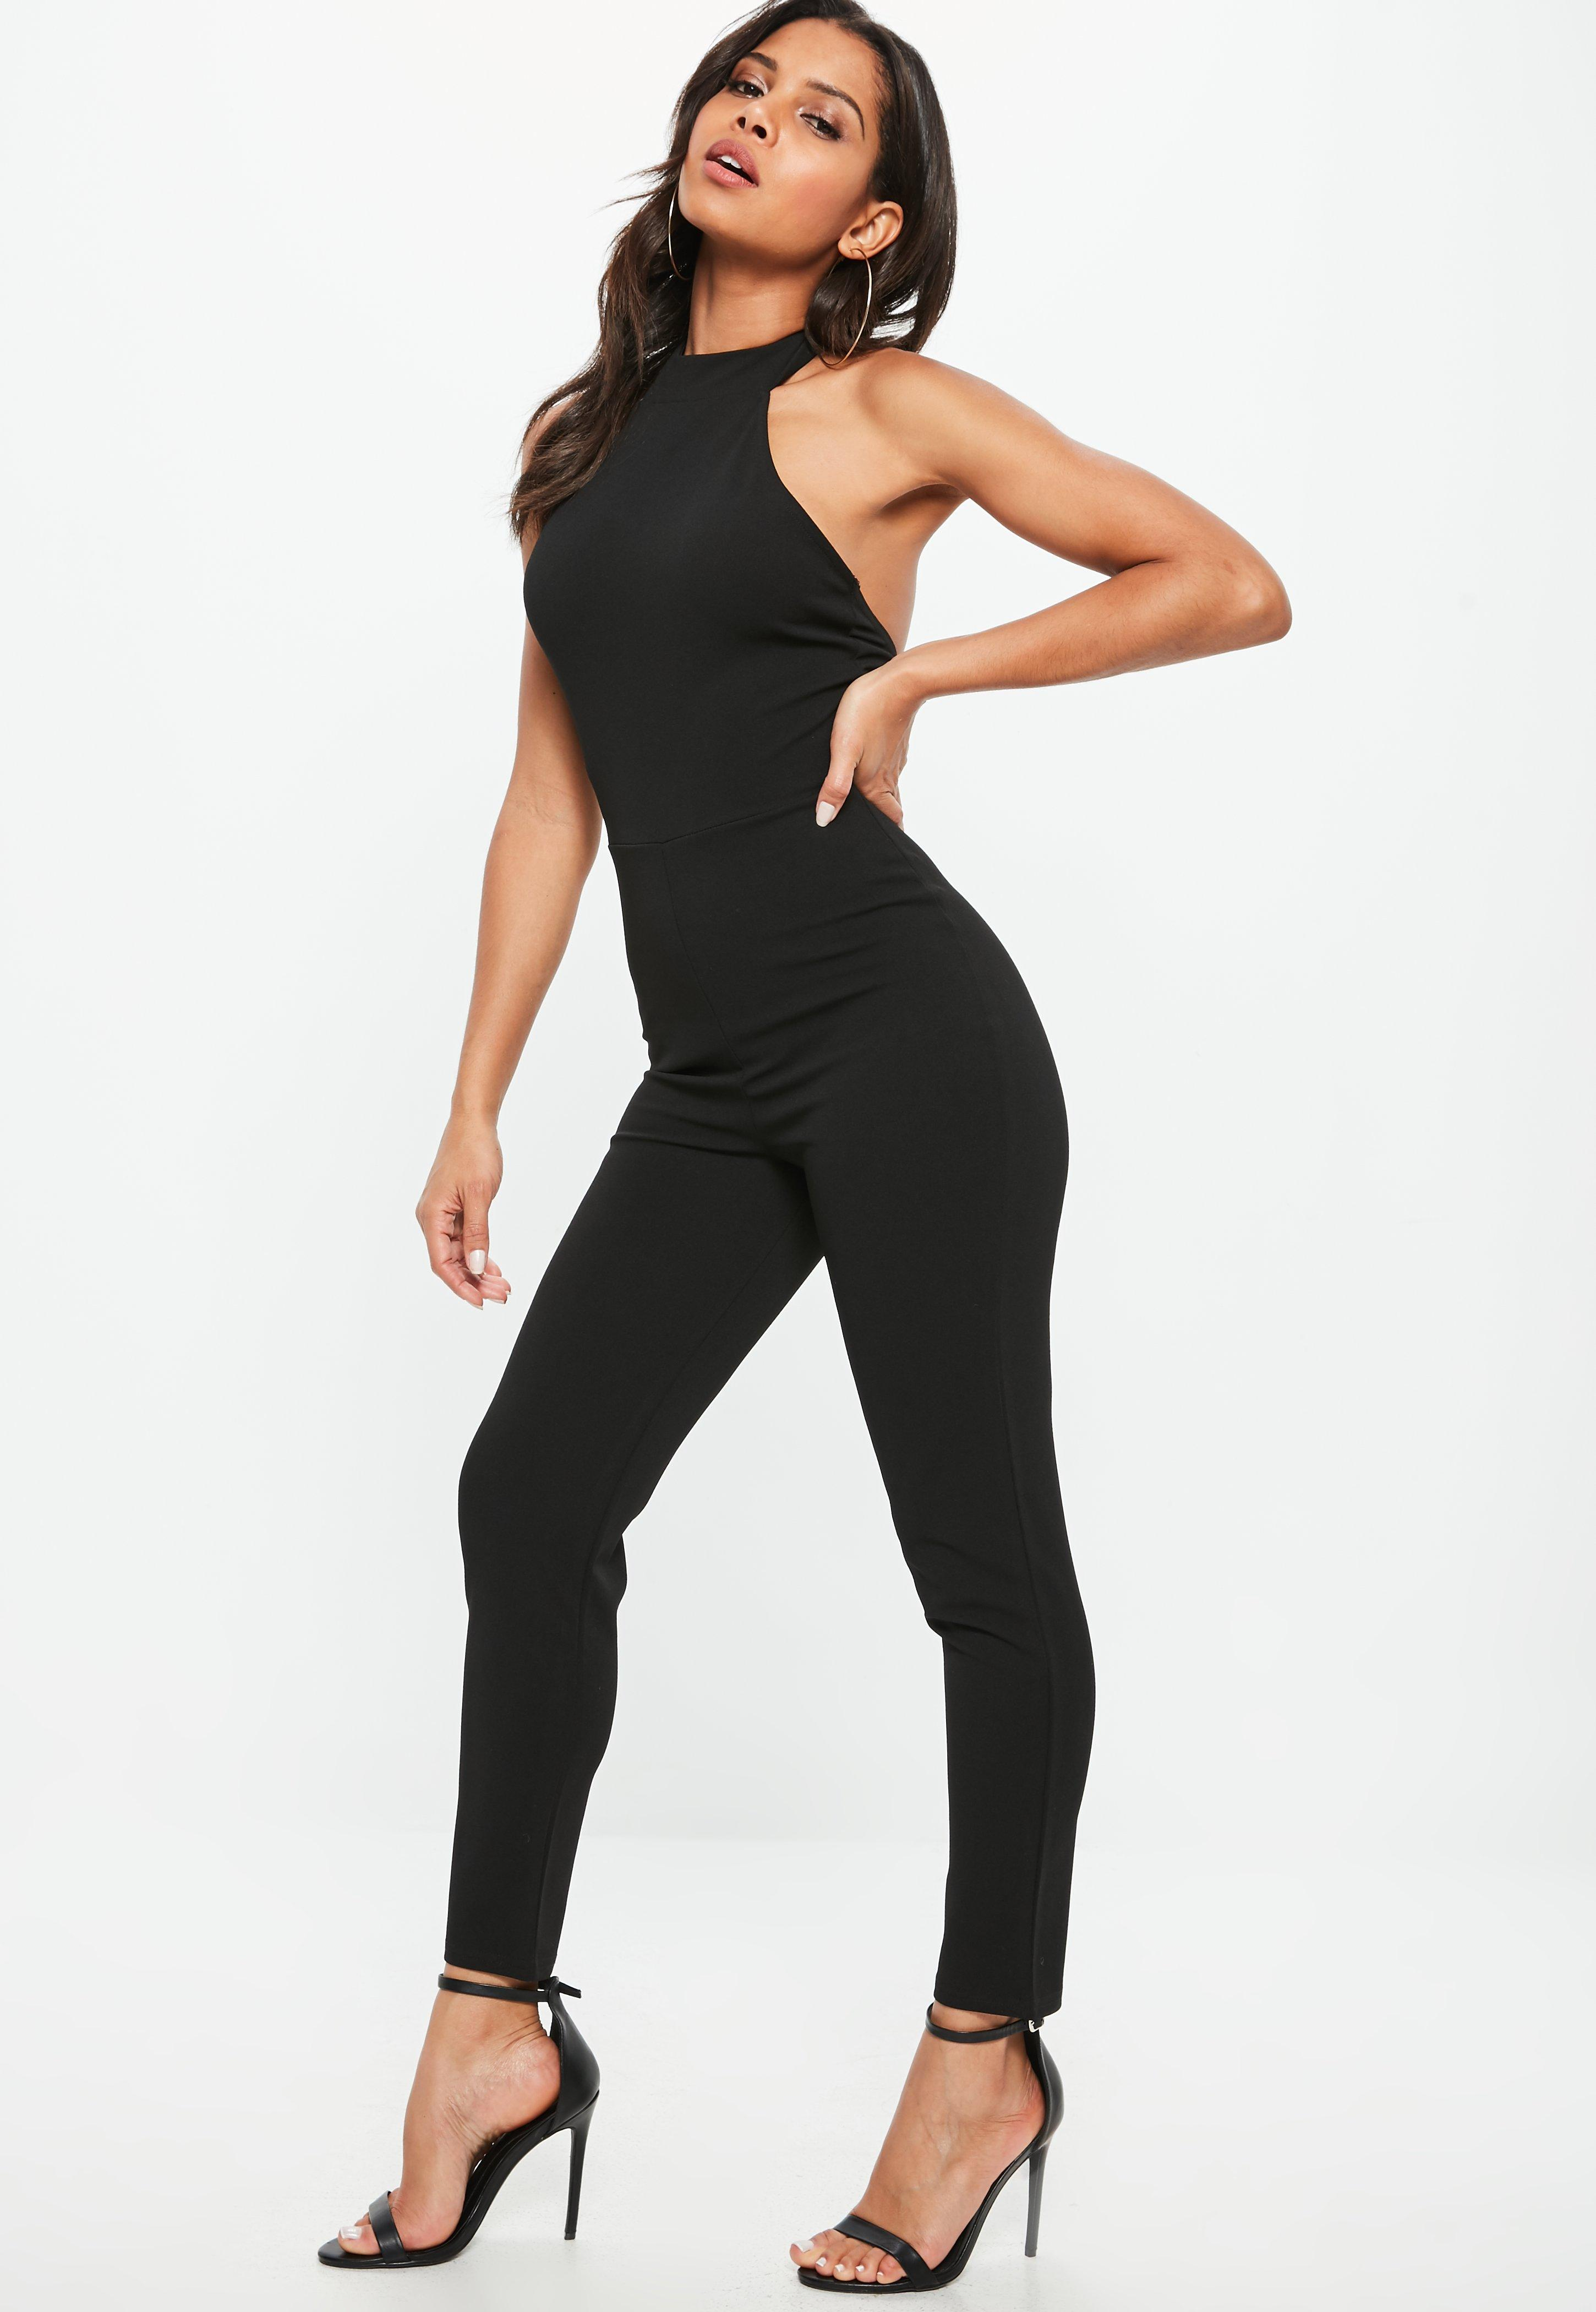 48f055c7a21c Lyst - Missguided Black High Neck Racer Unitard Jumpsuit in Black